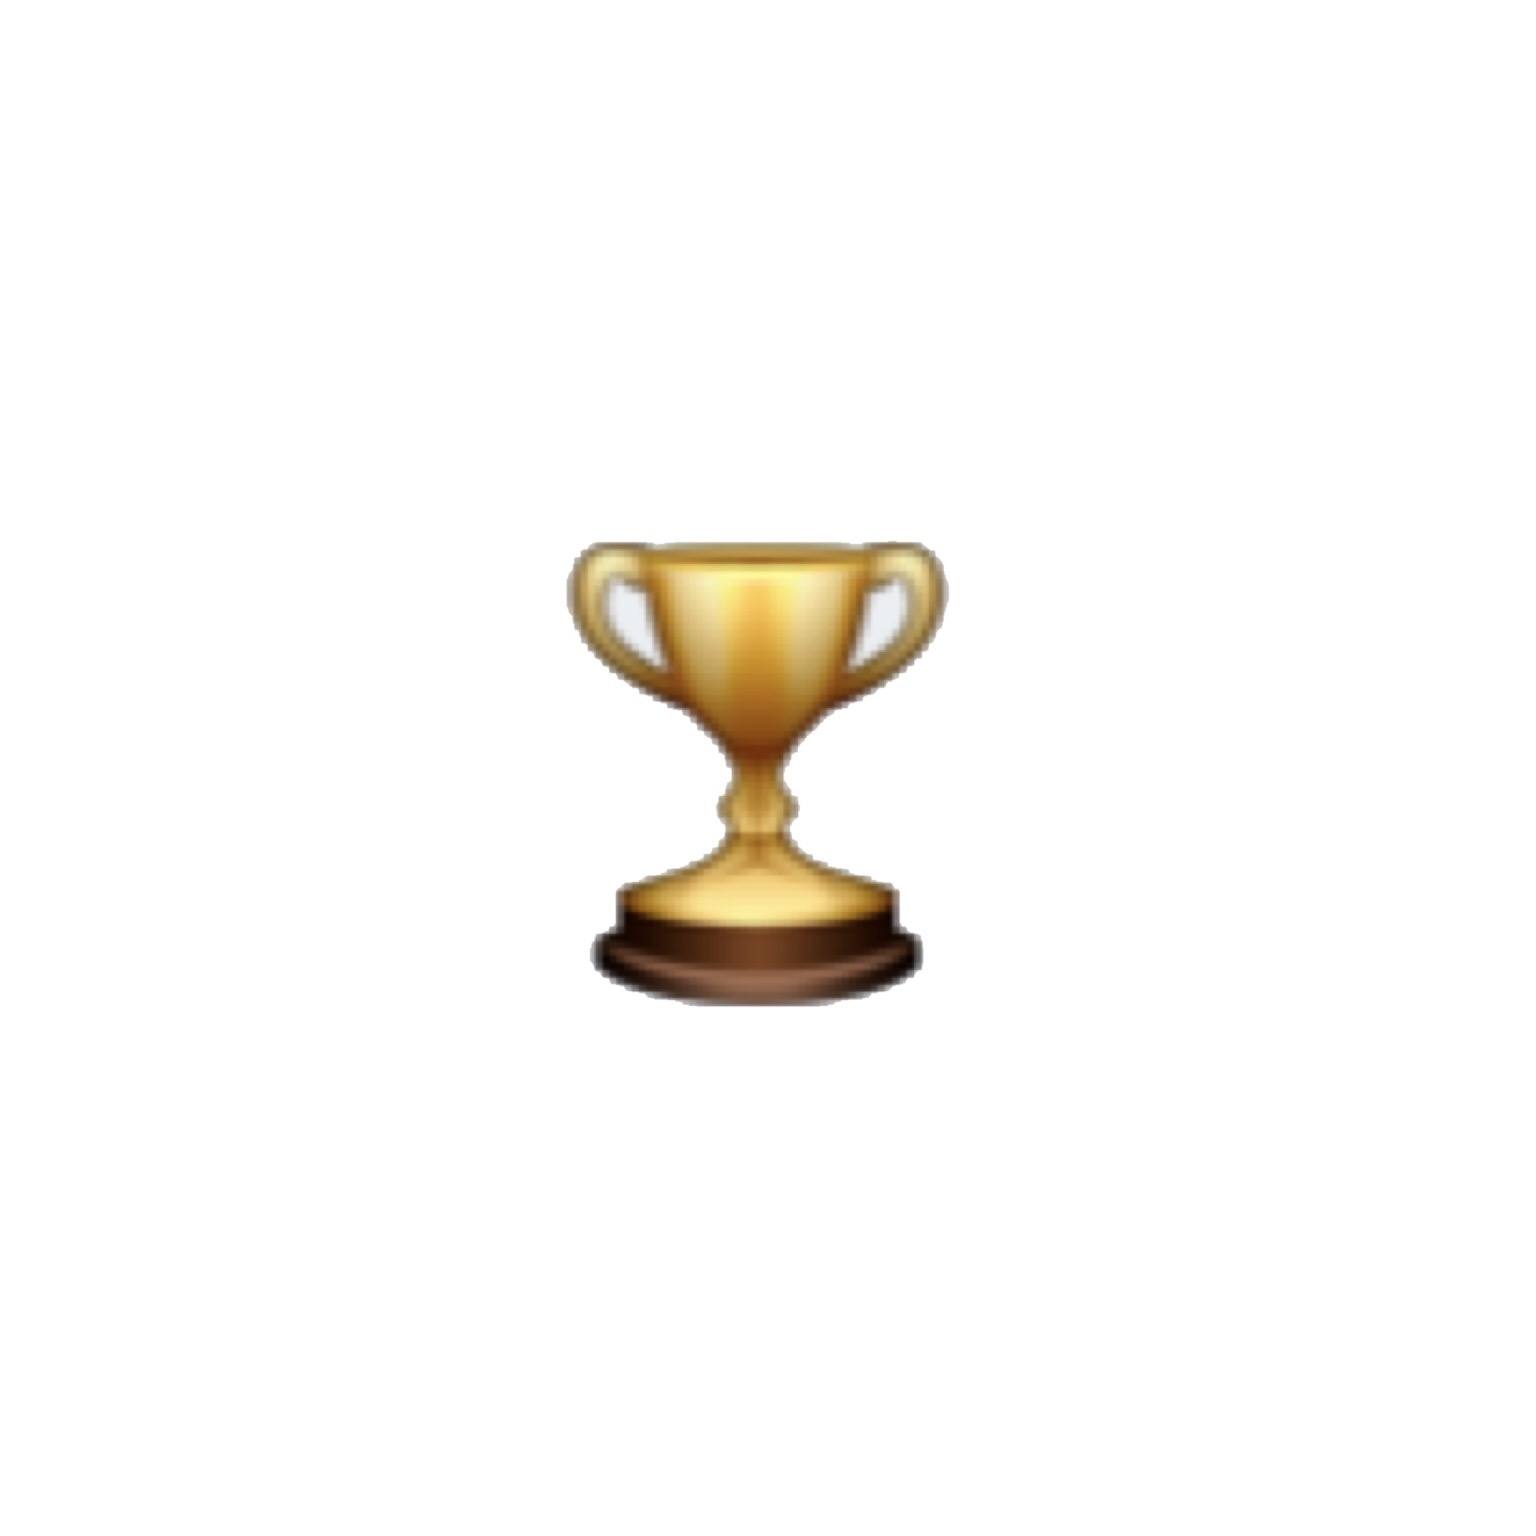 Trophy clipart first place trophy emoji clipart kid - Cliparting.com